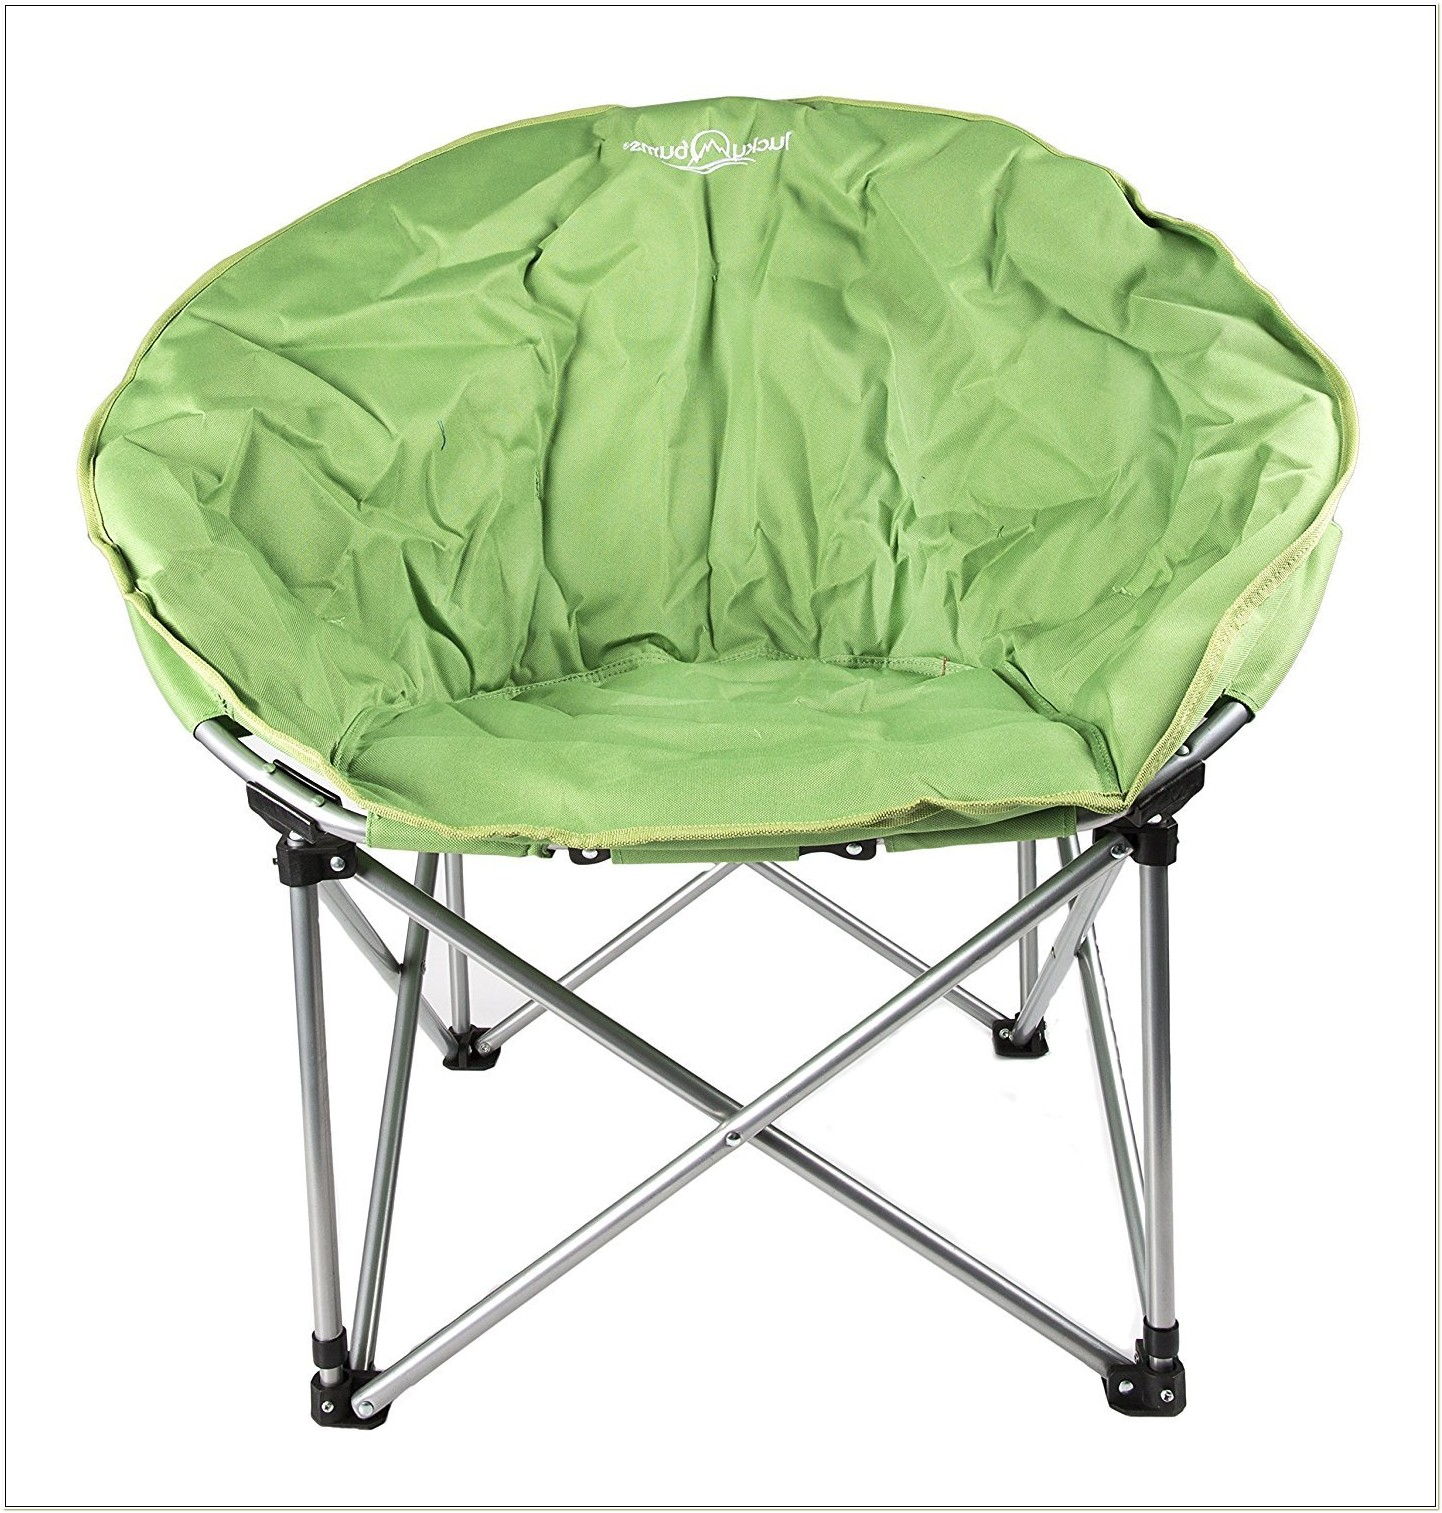 Lucky Bums Camp Moon Chair